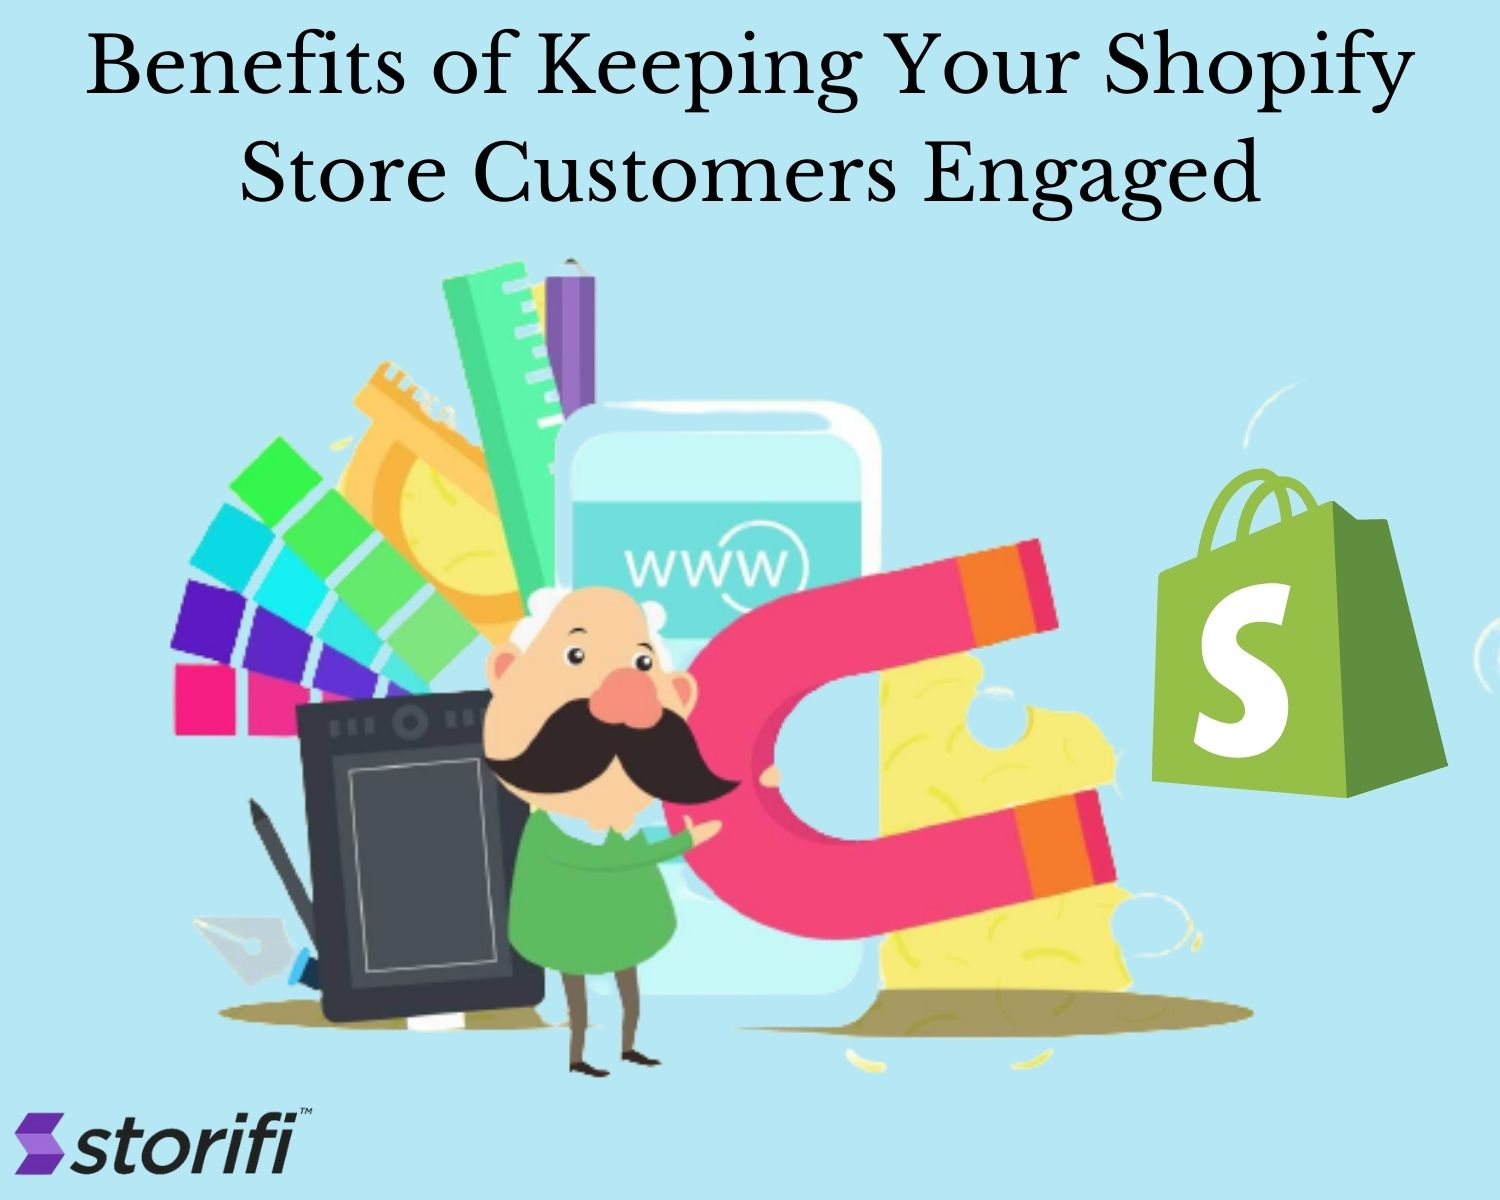 Benefits of Keeping Your Shopify StoreCustomers Engaged